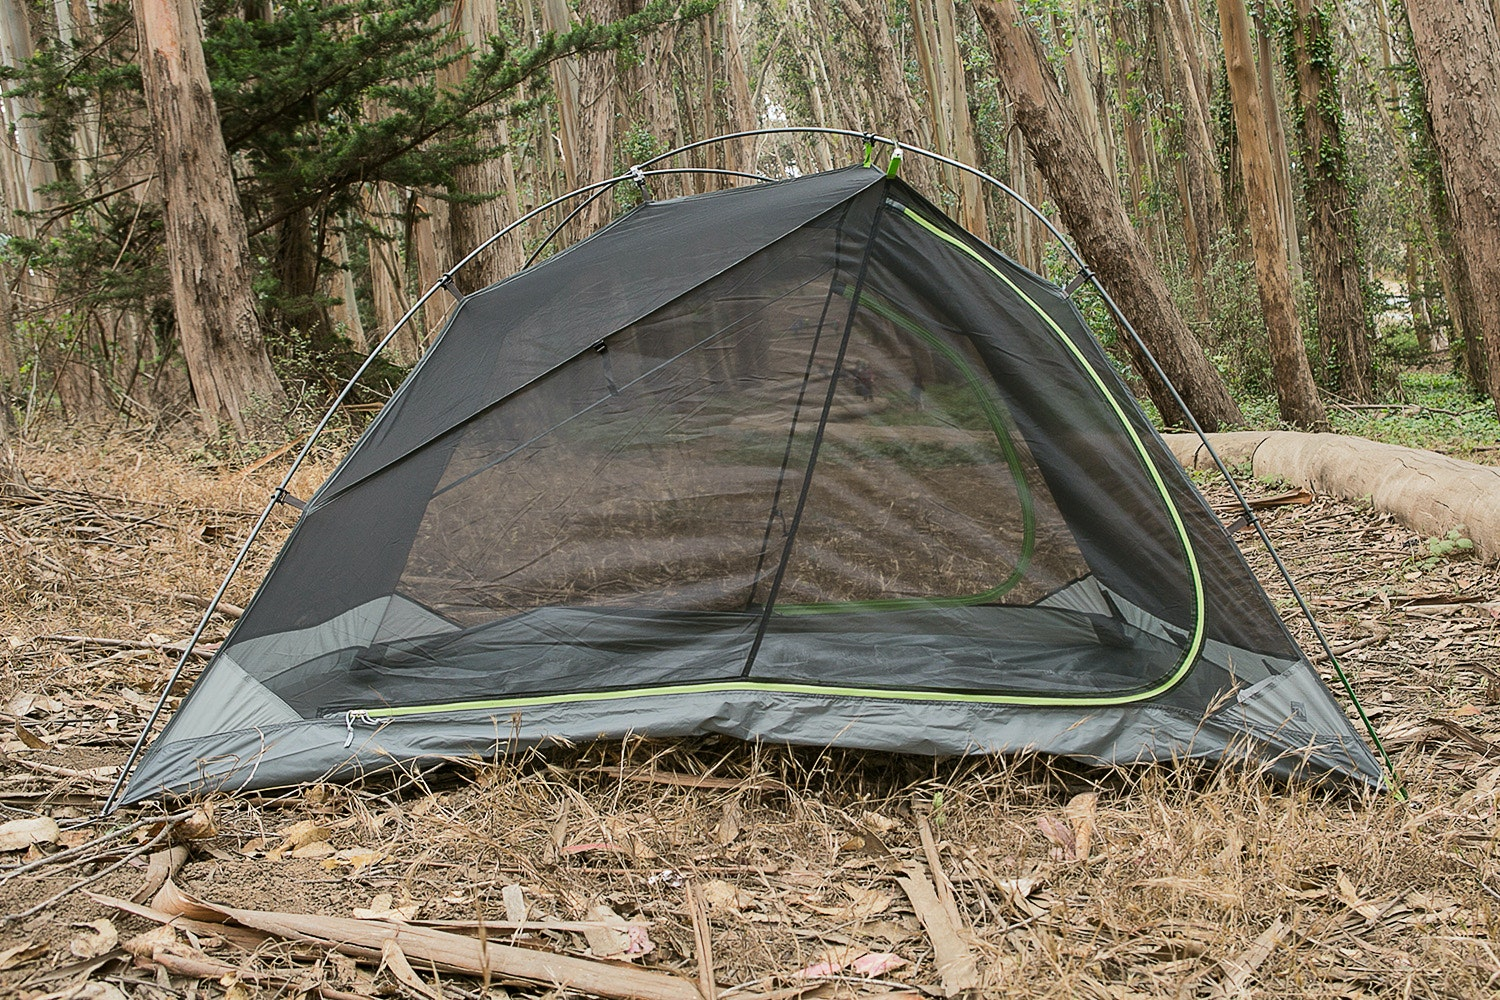 Kelty TN2 TN3 u0026 TN4 Tents & Kelty TN2 TN3 u0026 TN4 Tents | Price u0026 Reviews | Massdrop